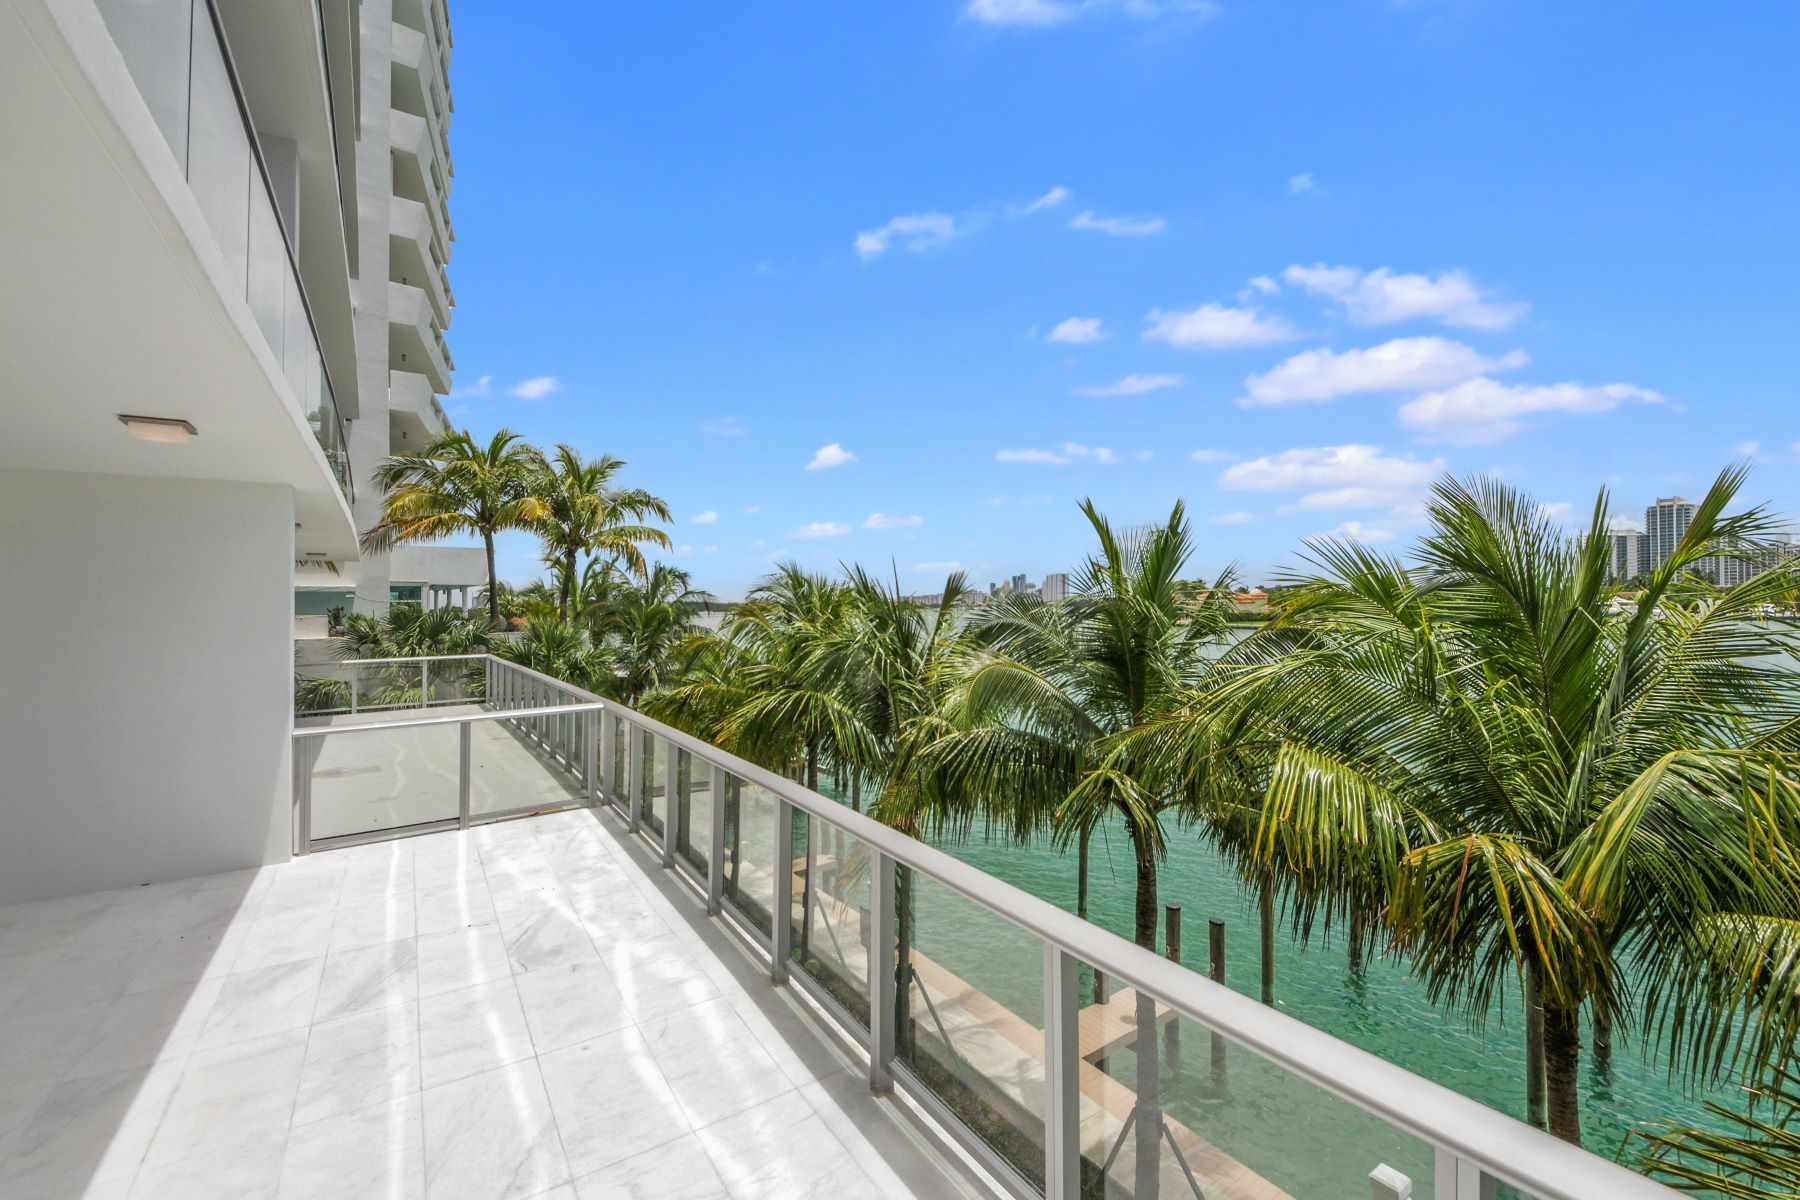 Condominiums for Sale at 10201 E Bay Harbor Dr 202 Bay Harbor Islands, Florida 33154 United States